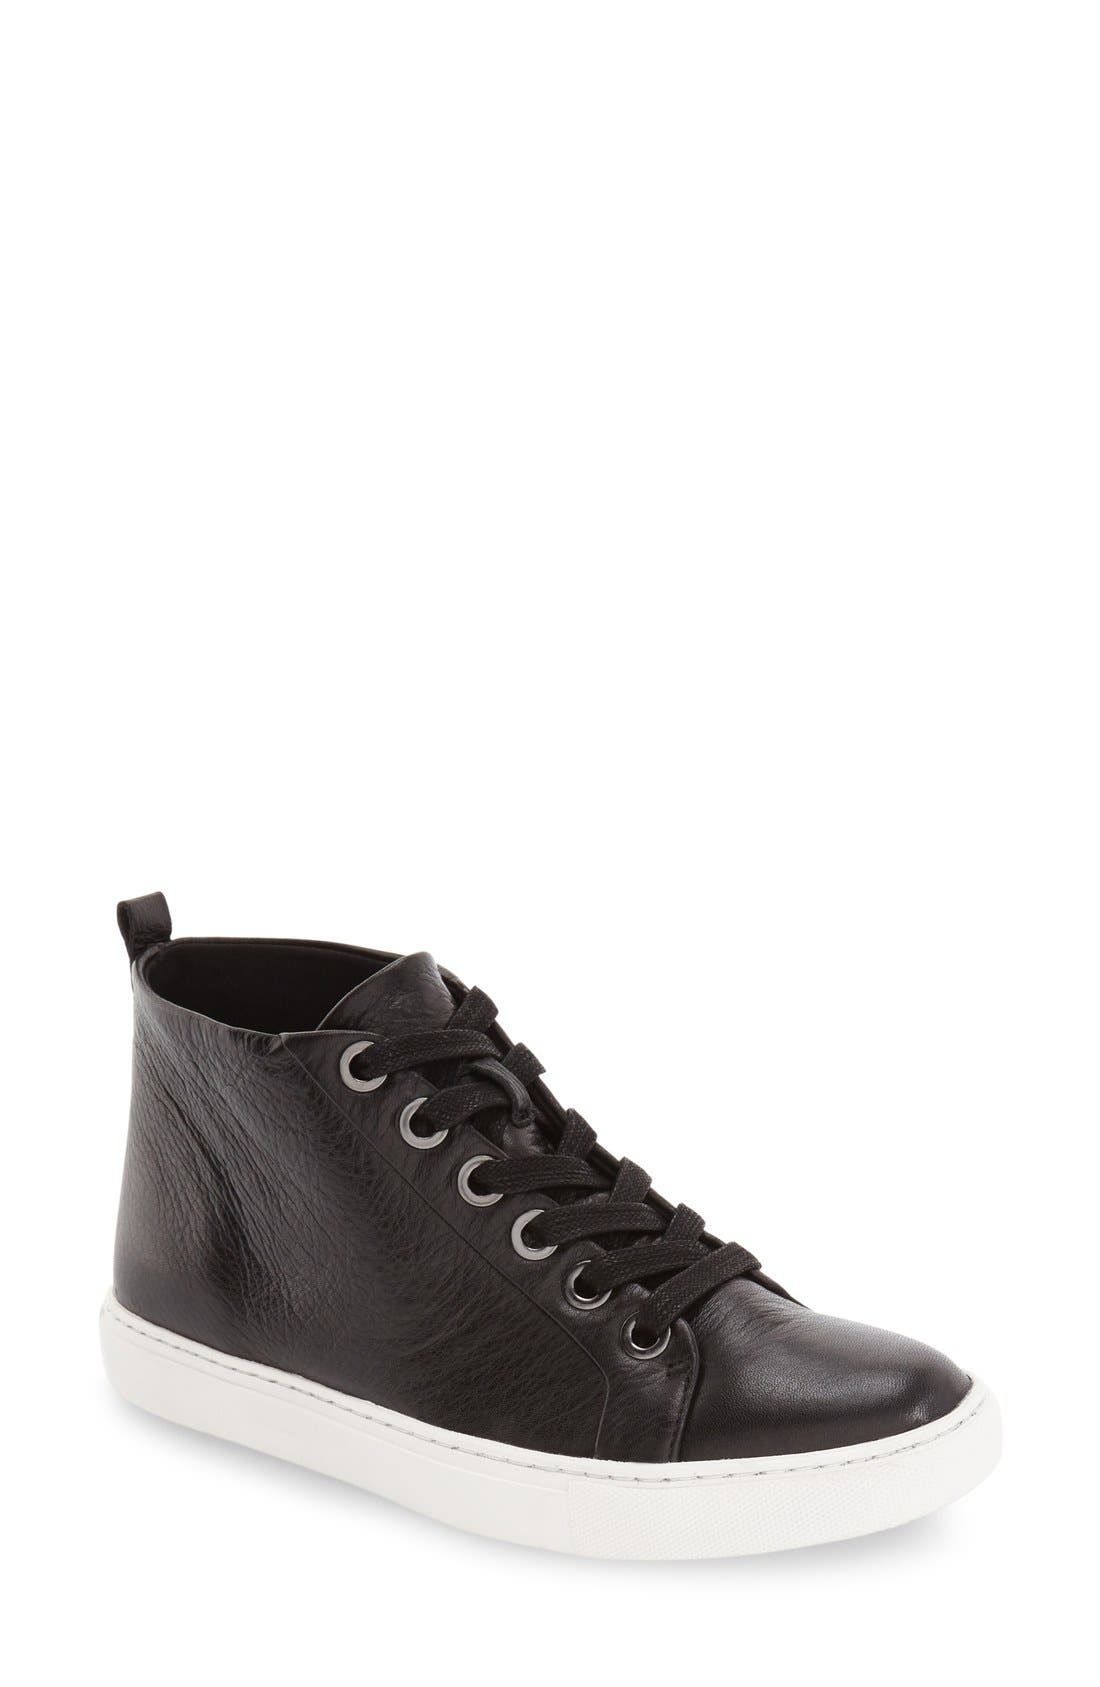 Kenneth Cole New York 'Kaleb' High Top Sneaker (Women)